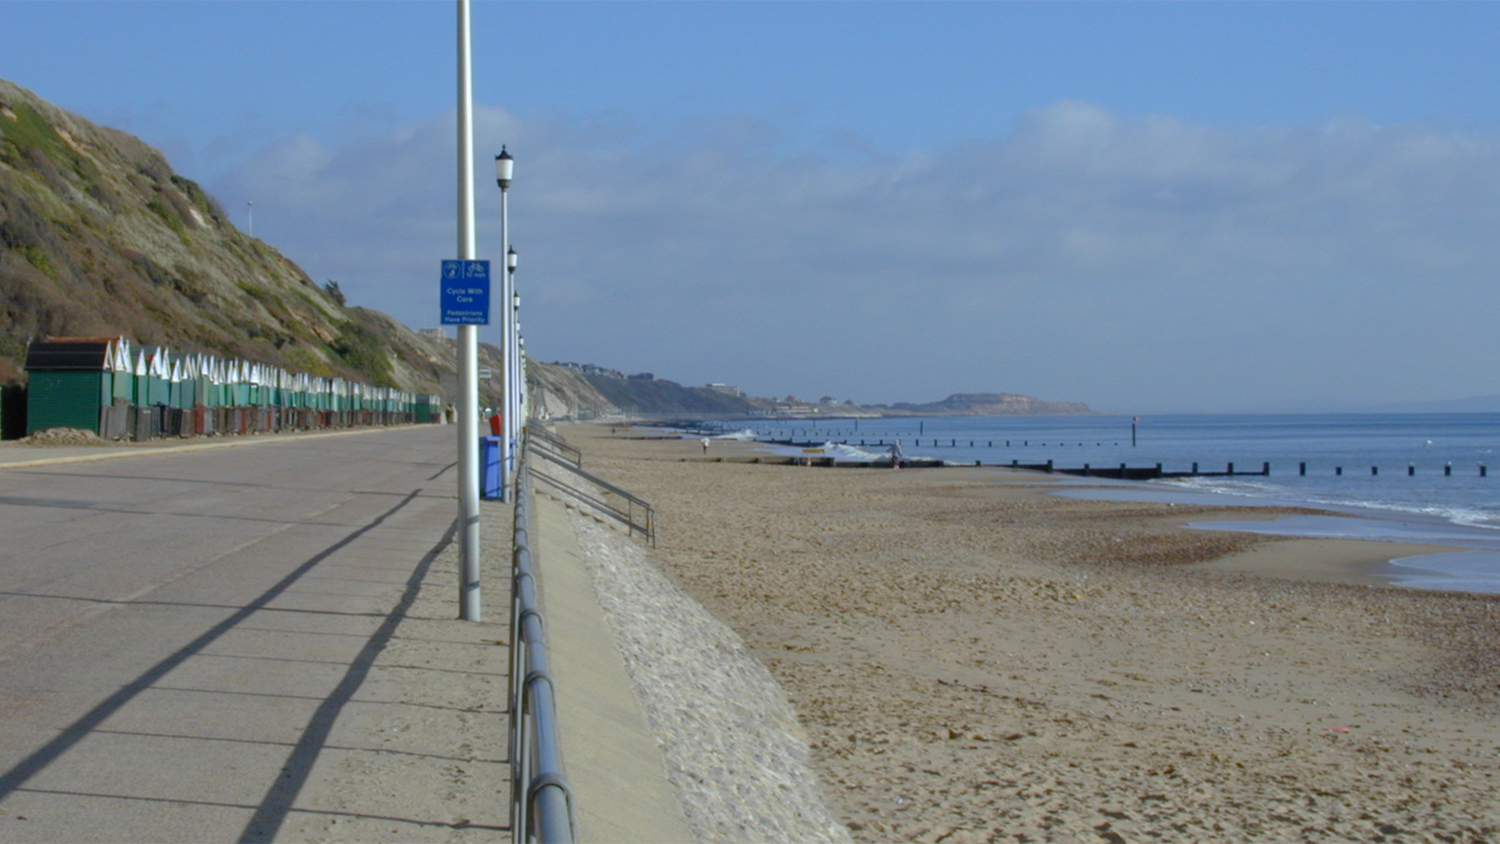 Alum Chine Beach at Bournemouth in Dorset is an RNLI lifeguarded beach.